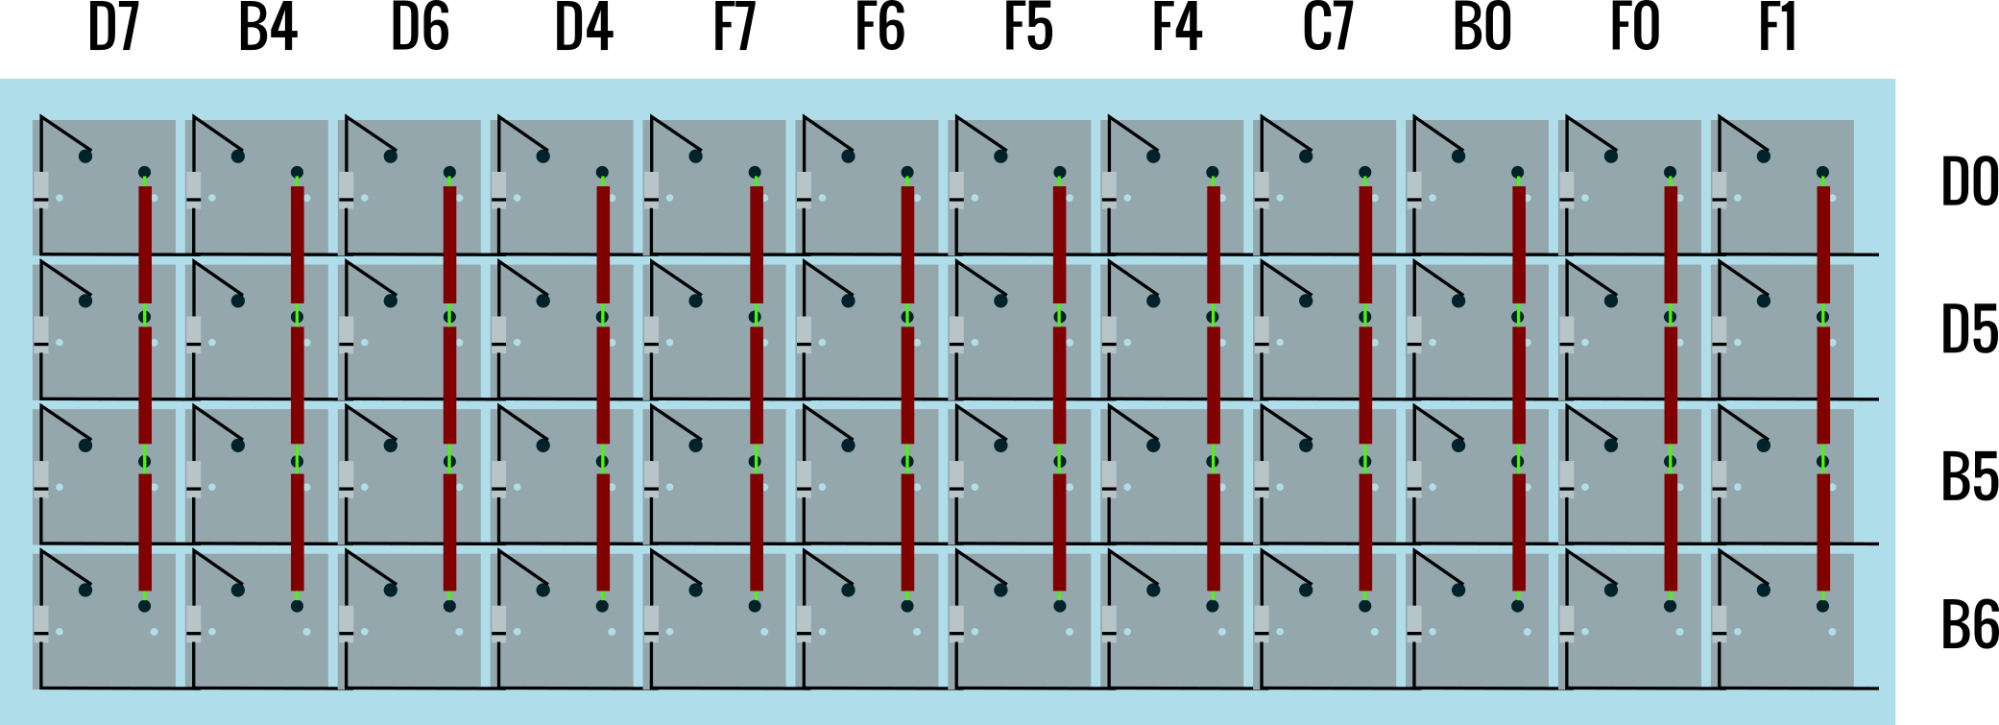 hight resolution of matrix with column and row labels